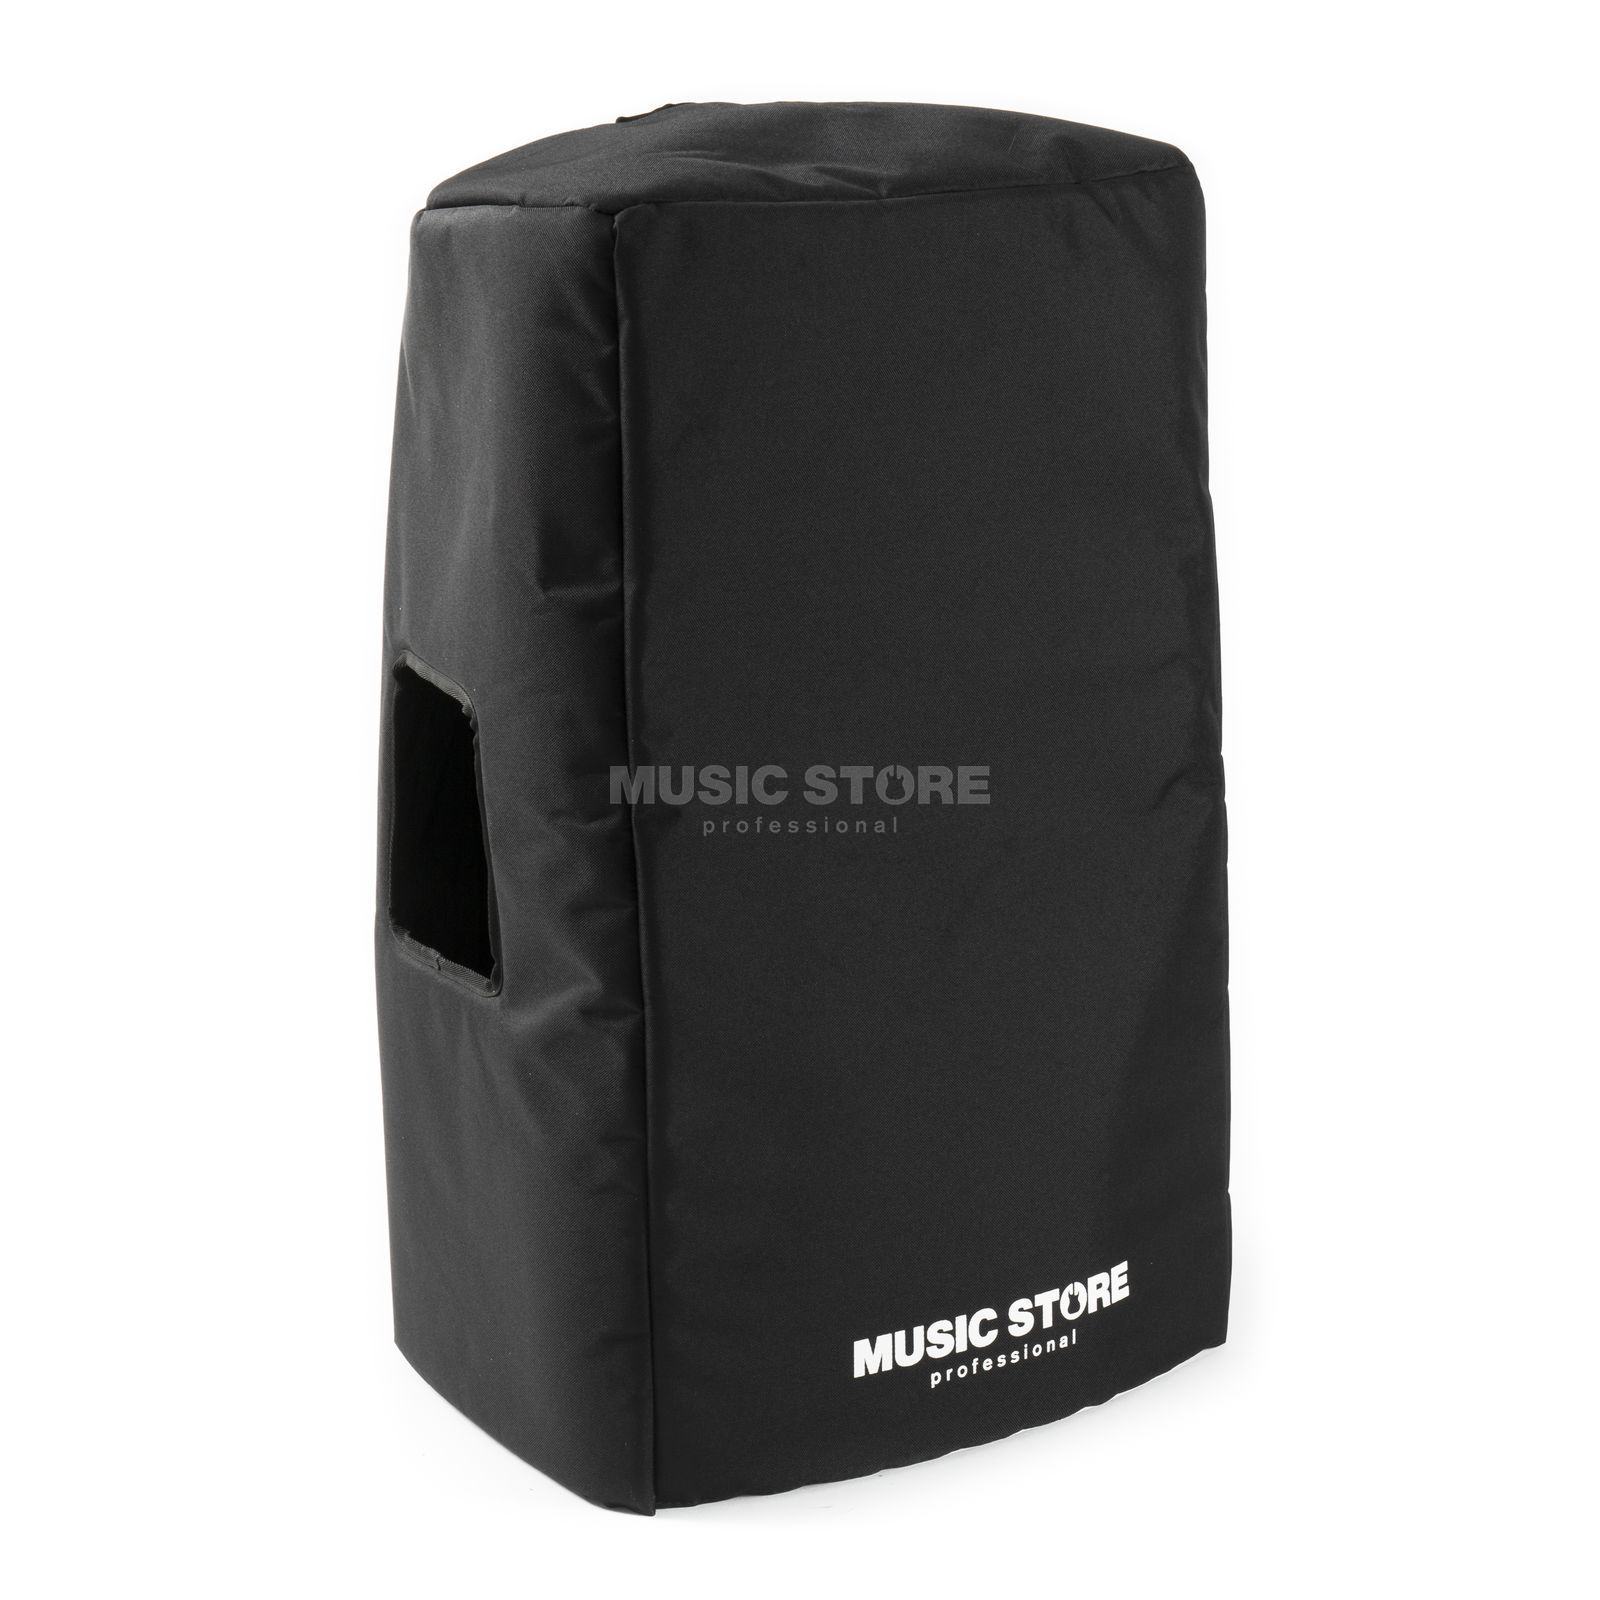 MUSIC STORE Padded Cover - JBL EON 615 Product Image